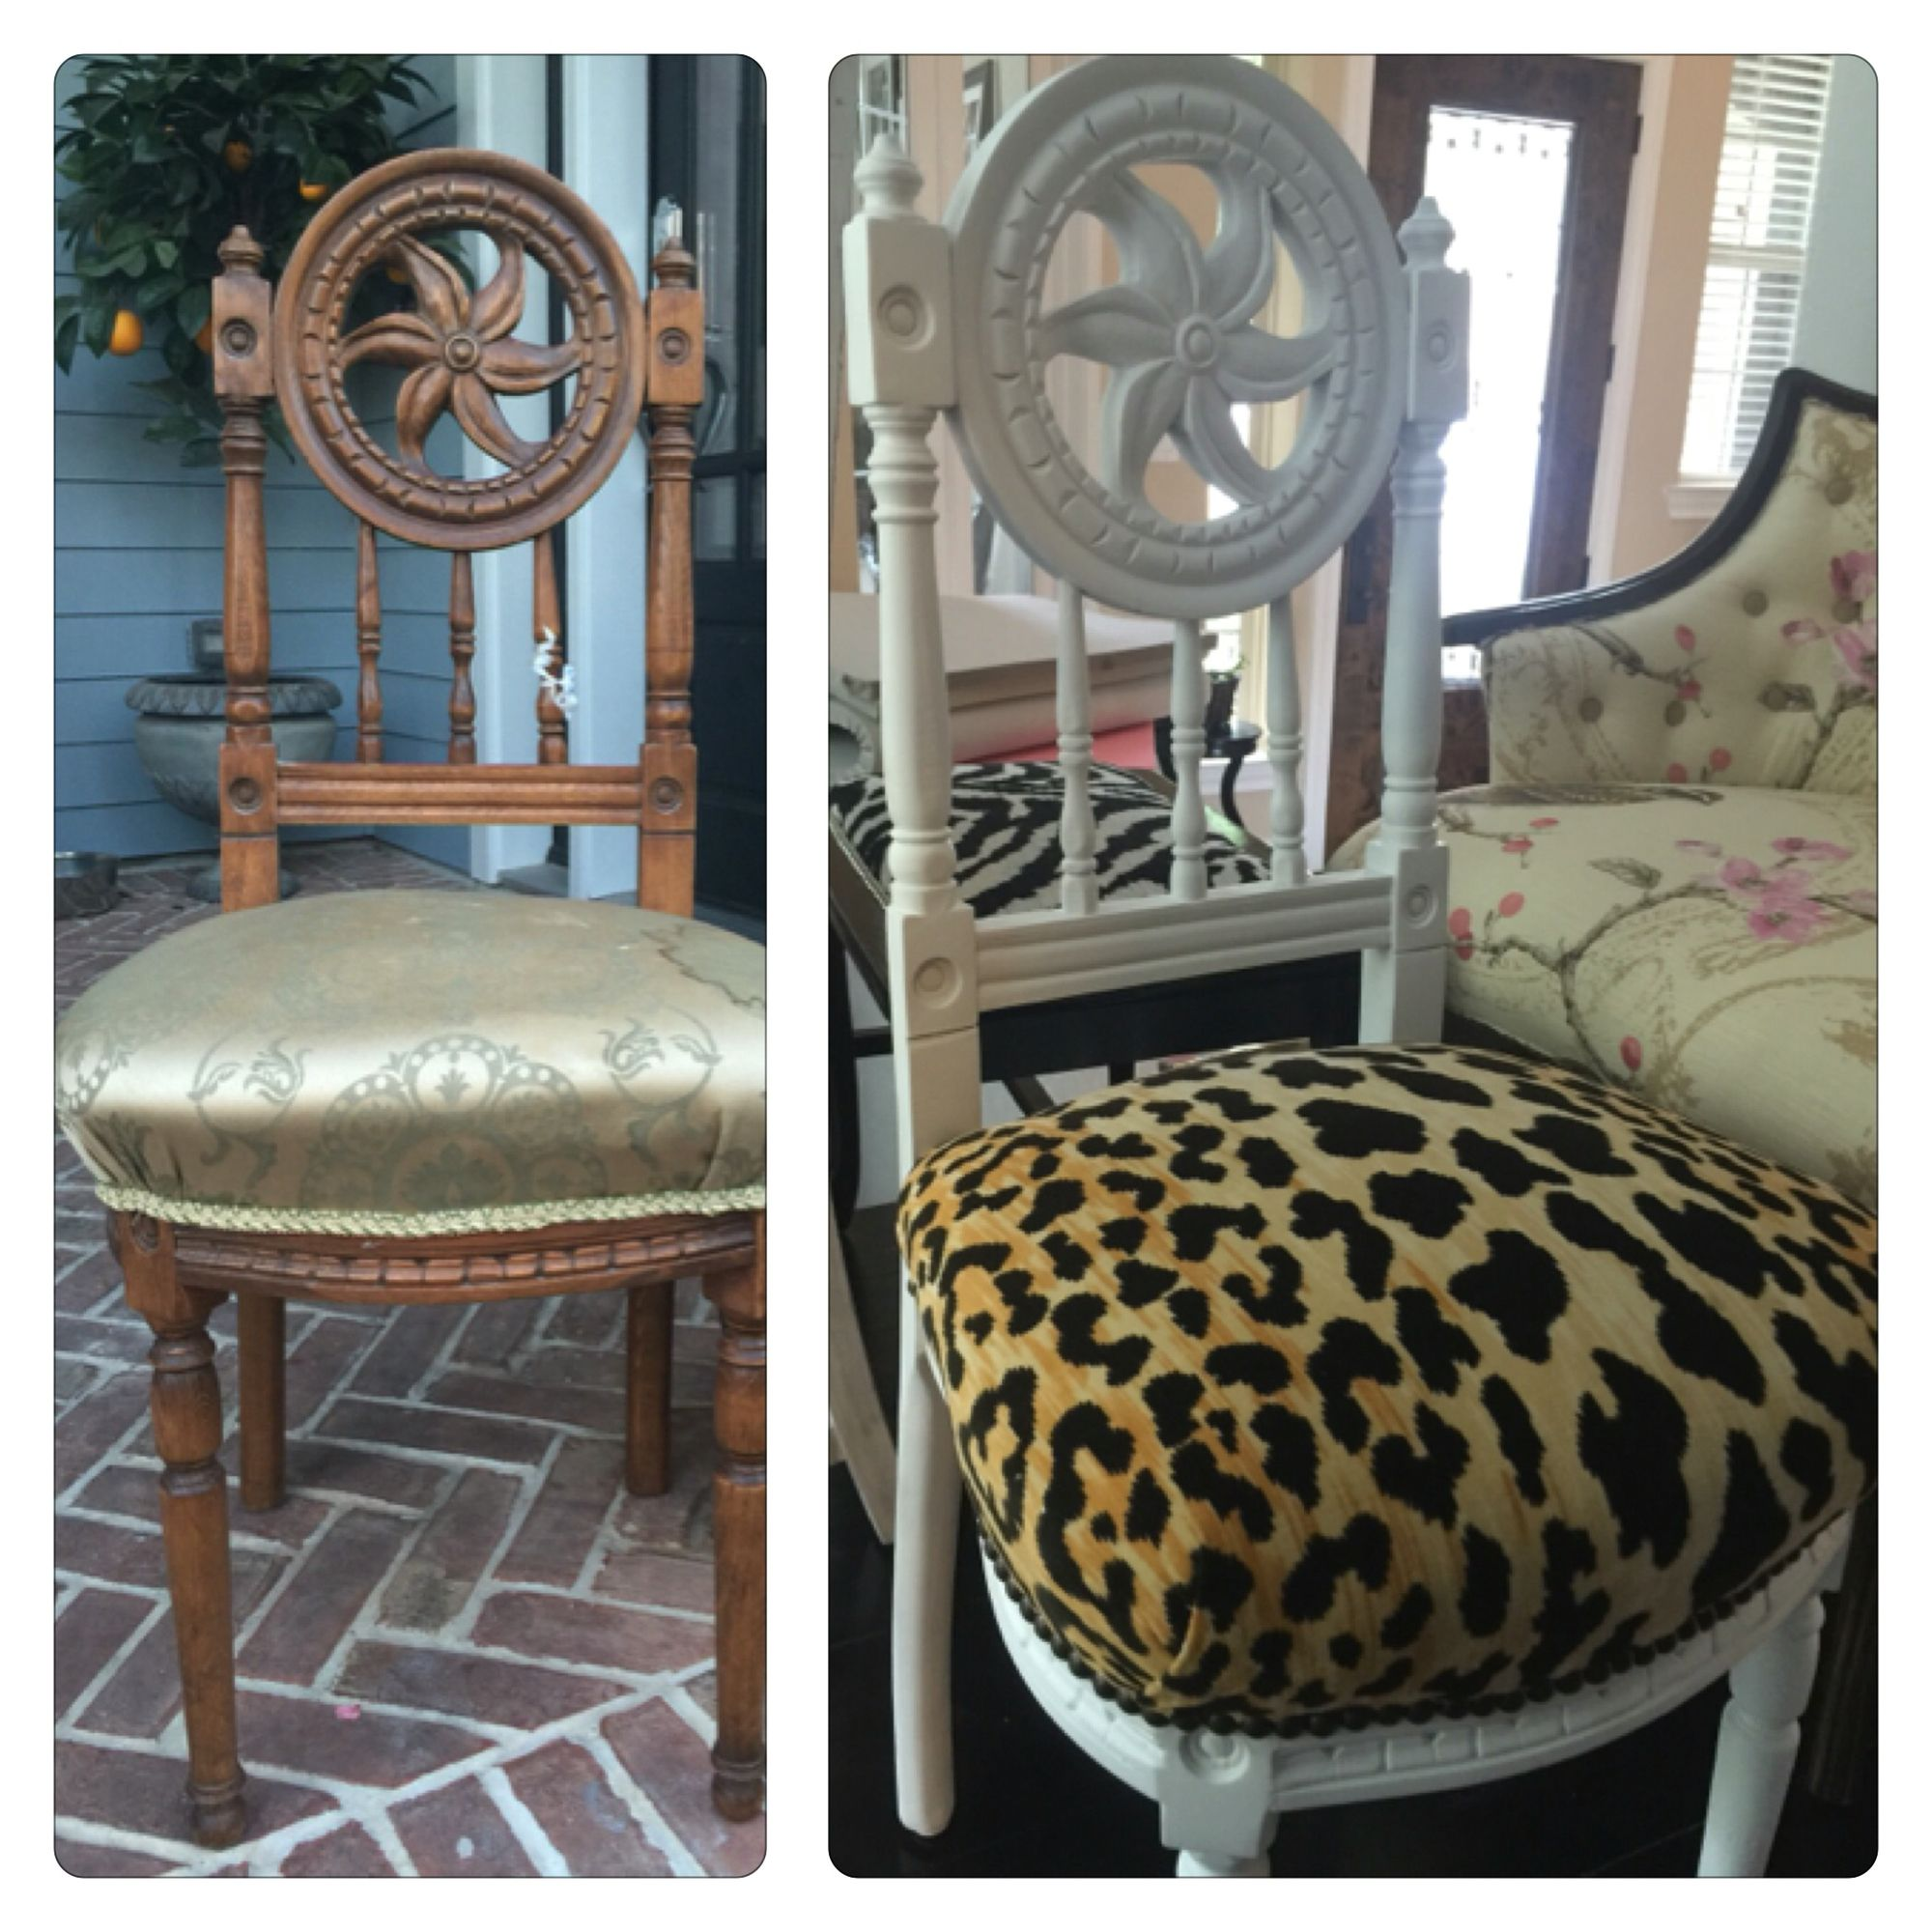 Chair antique queen anne chair the buzz on antiques antique chairs 101 - Vintage Chair Redo Chair Makeover Leopard Fabric And White Wood